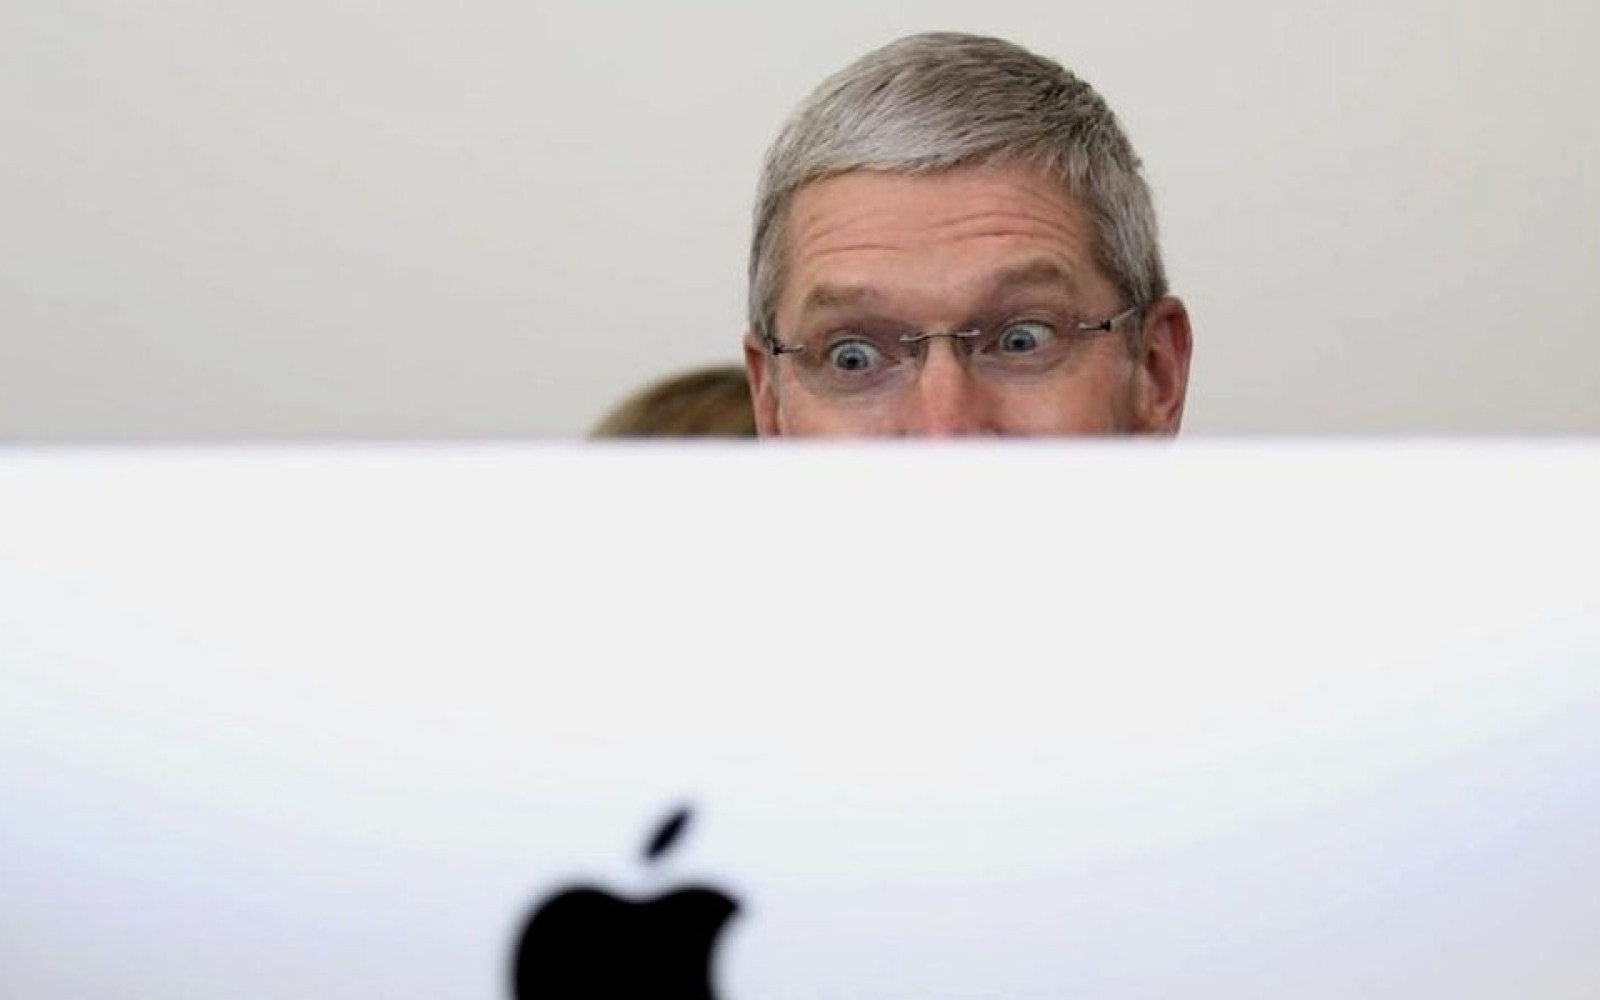 Senate proposal could allow Apple to repatriate $178B foreign cash, but unlikely to pass